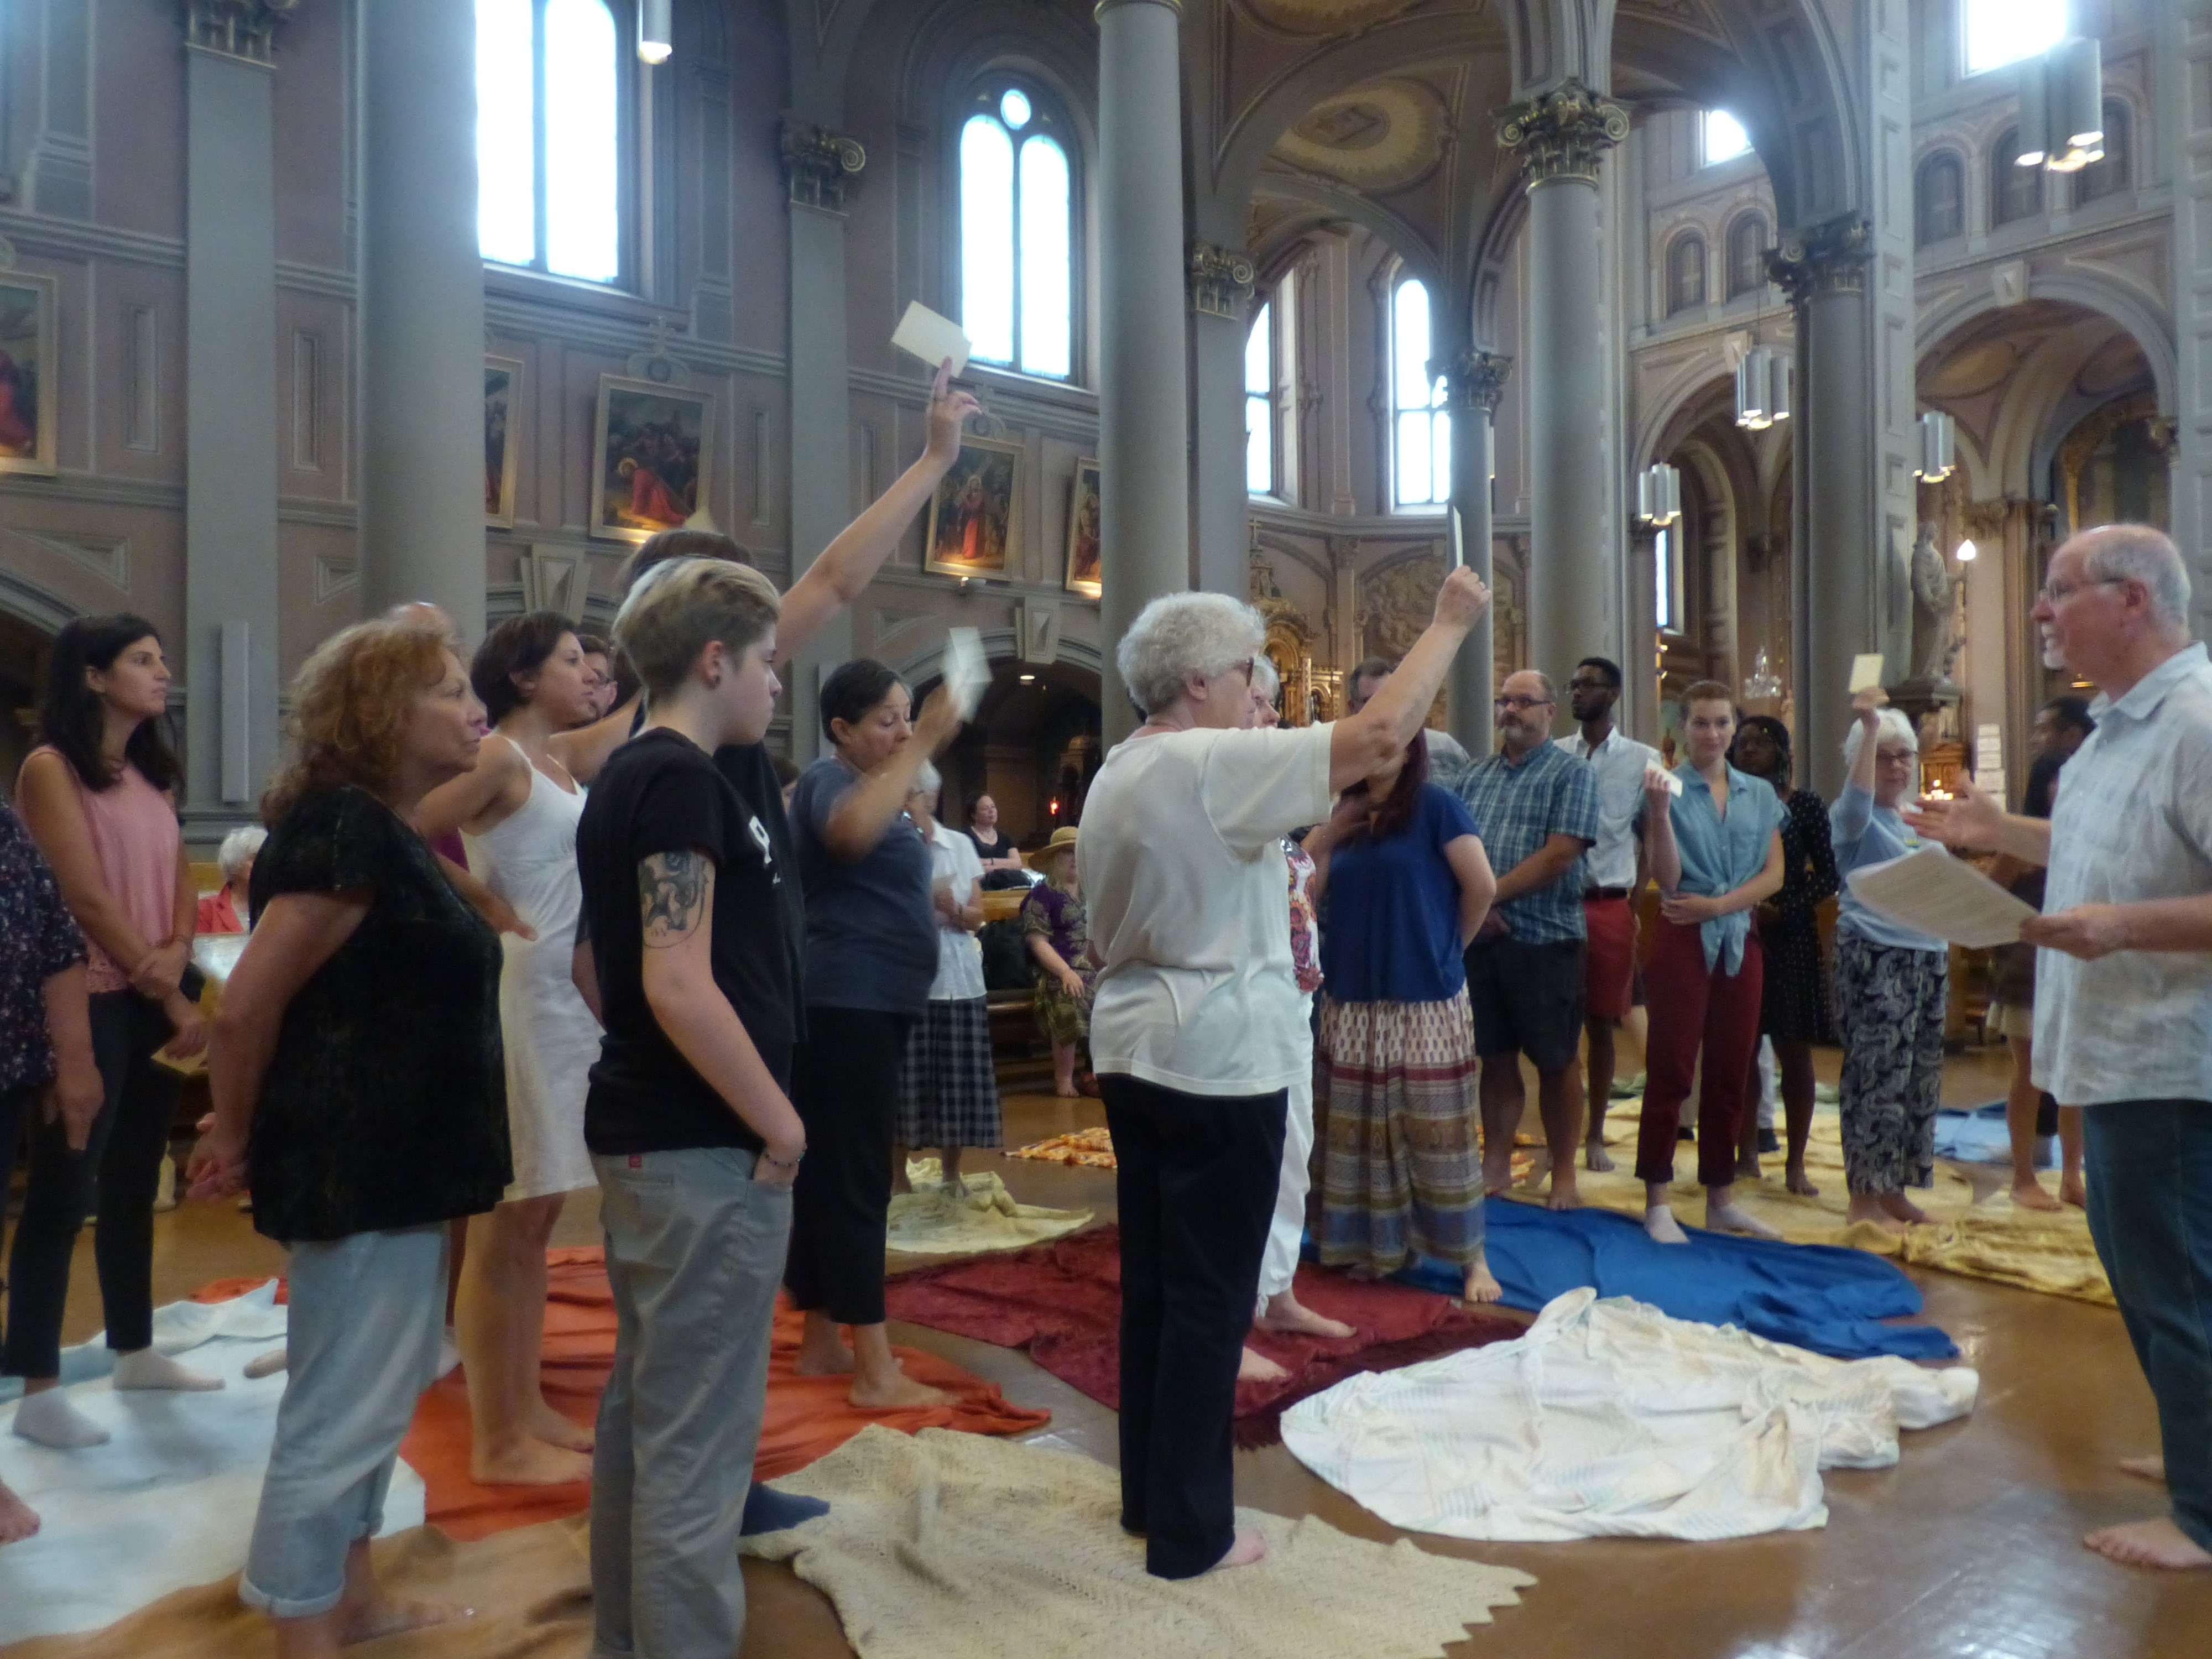 Aboriginal Mass: A First at the Church of the Gesù